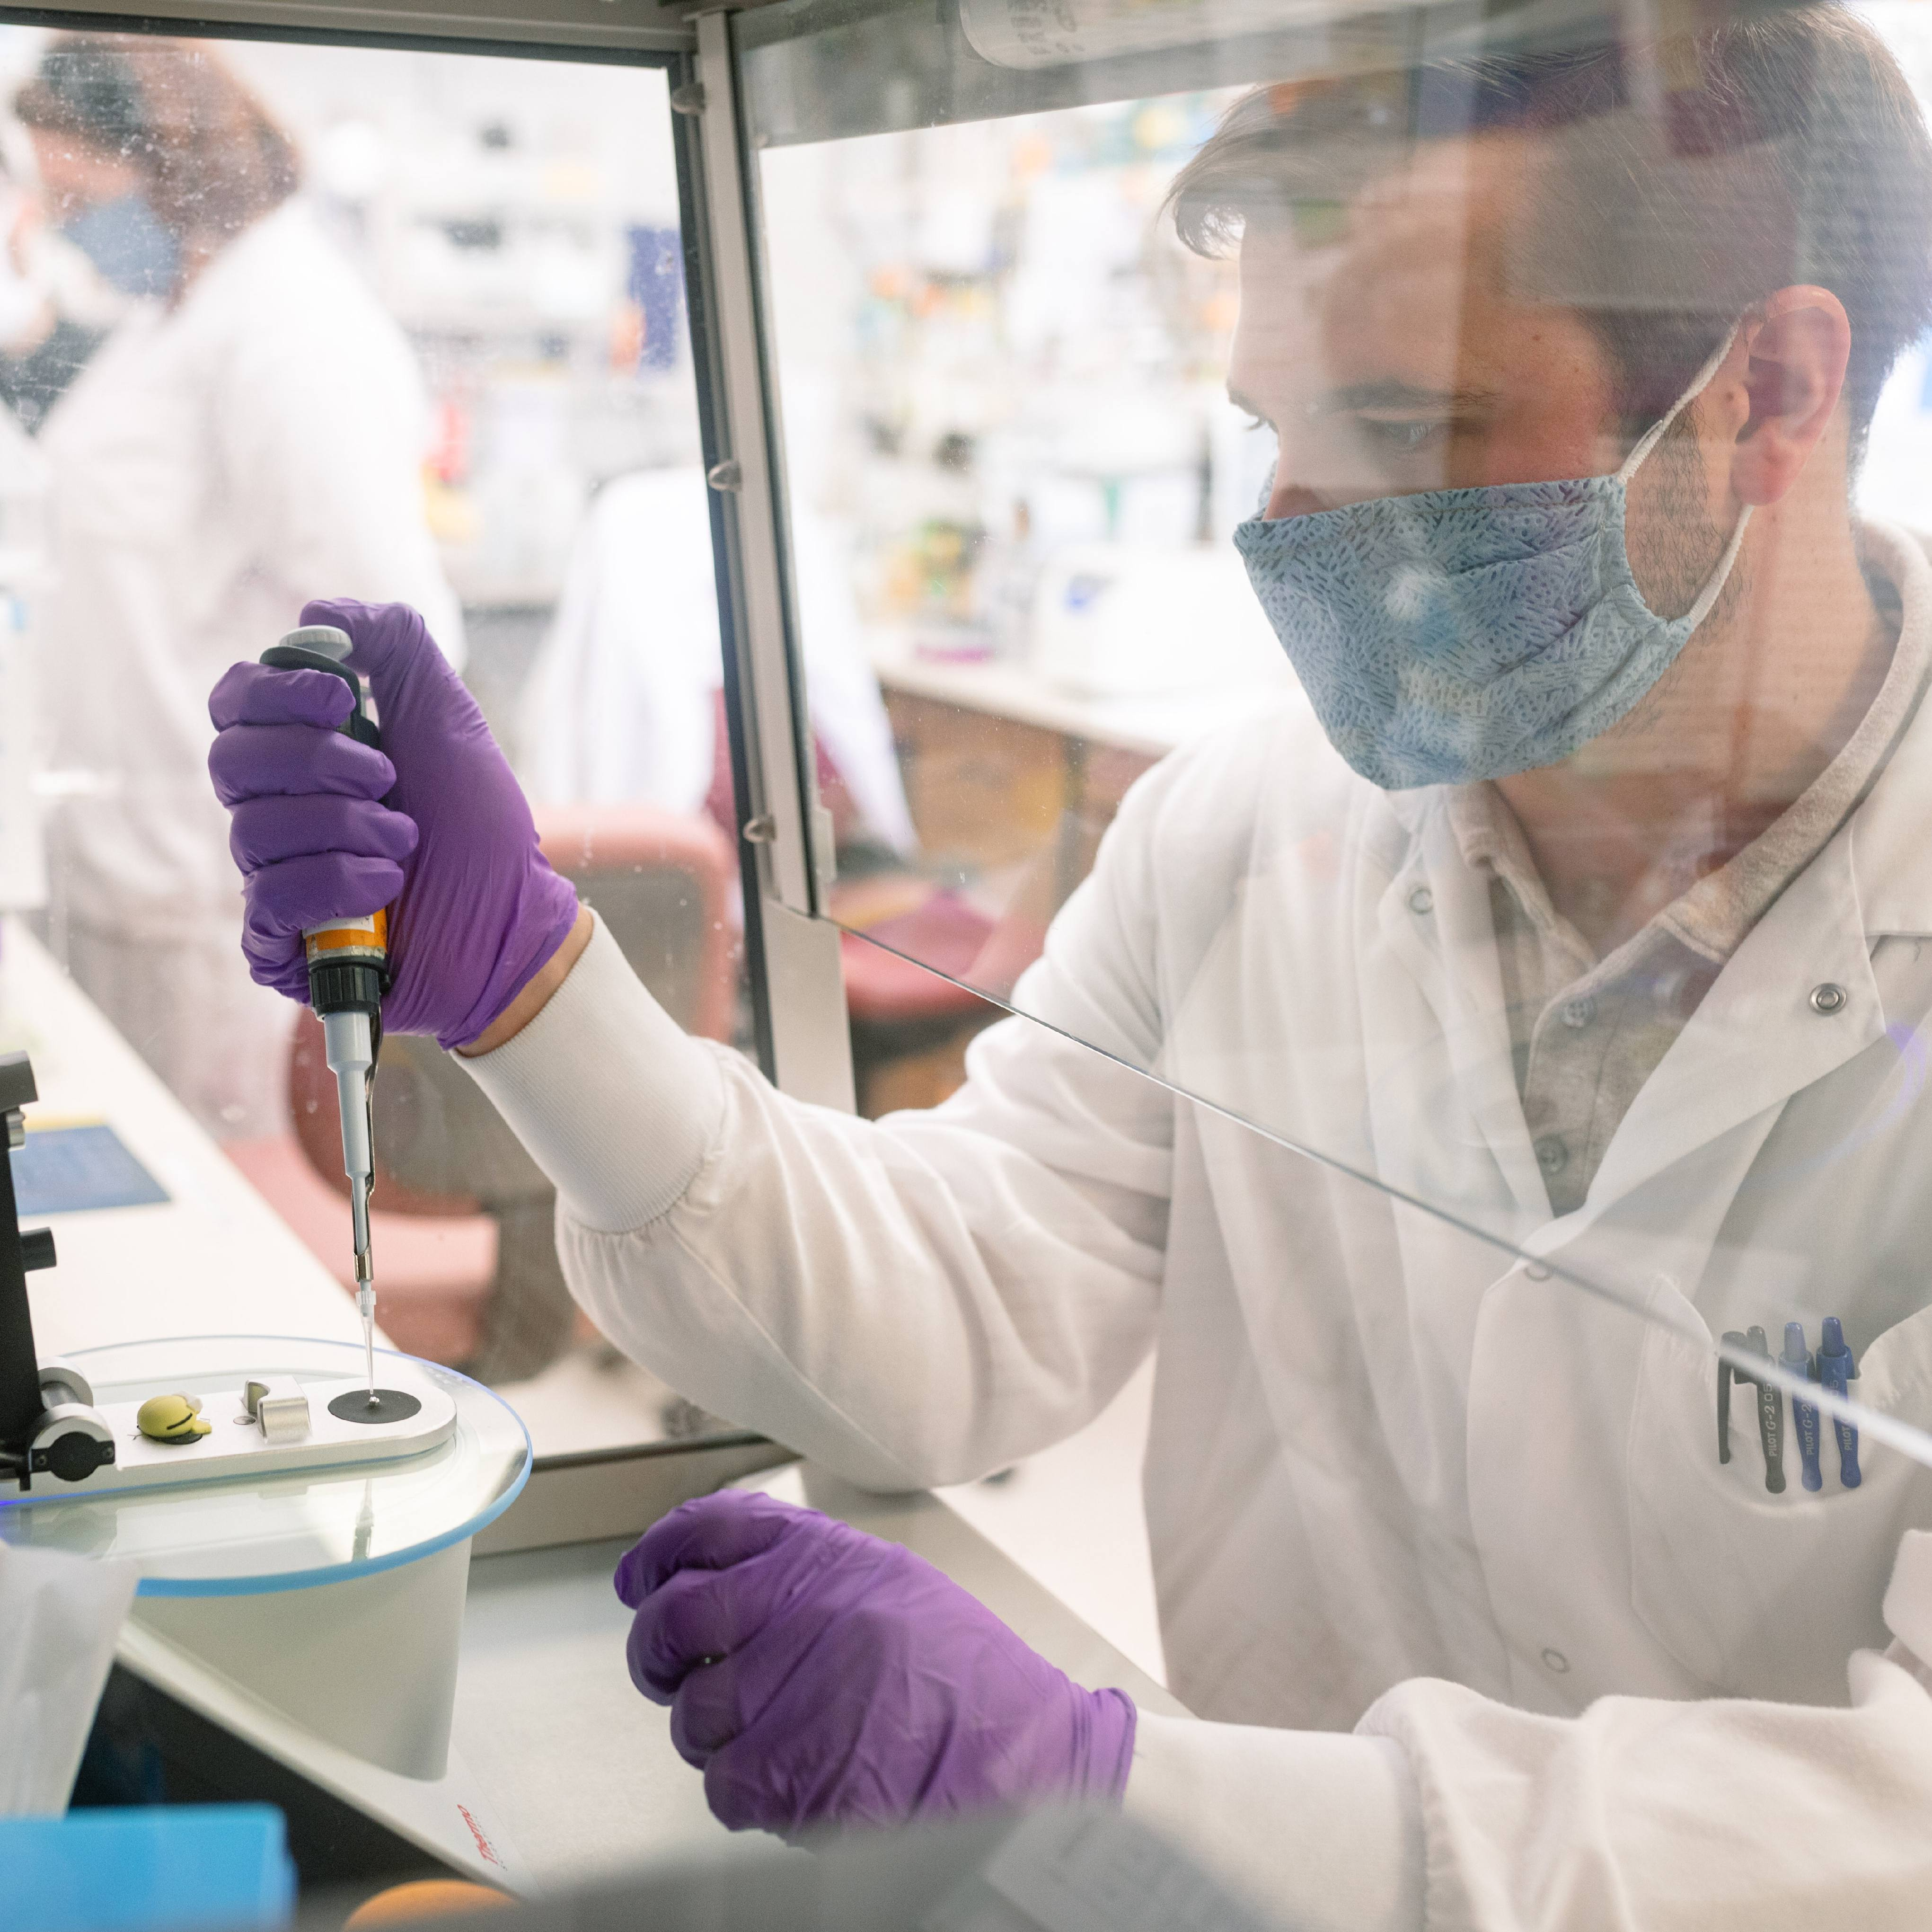 Mayo Clinic Laboratories researcher, a white man wearing a facemask and purple gloves while working with a specimen dropper behind a plastic shield in the lab